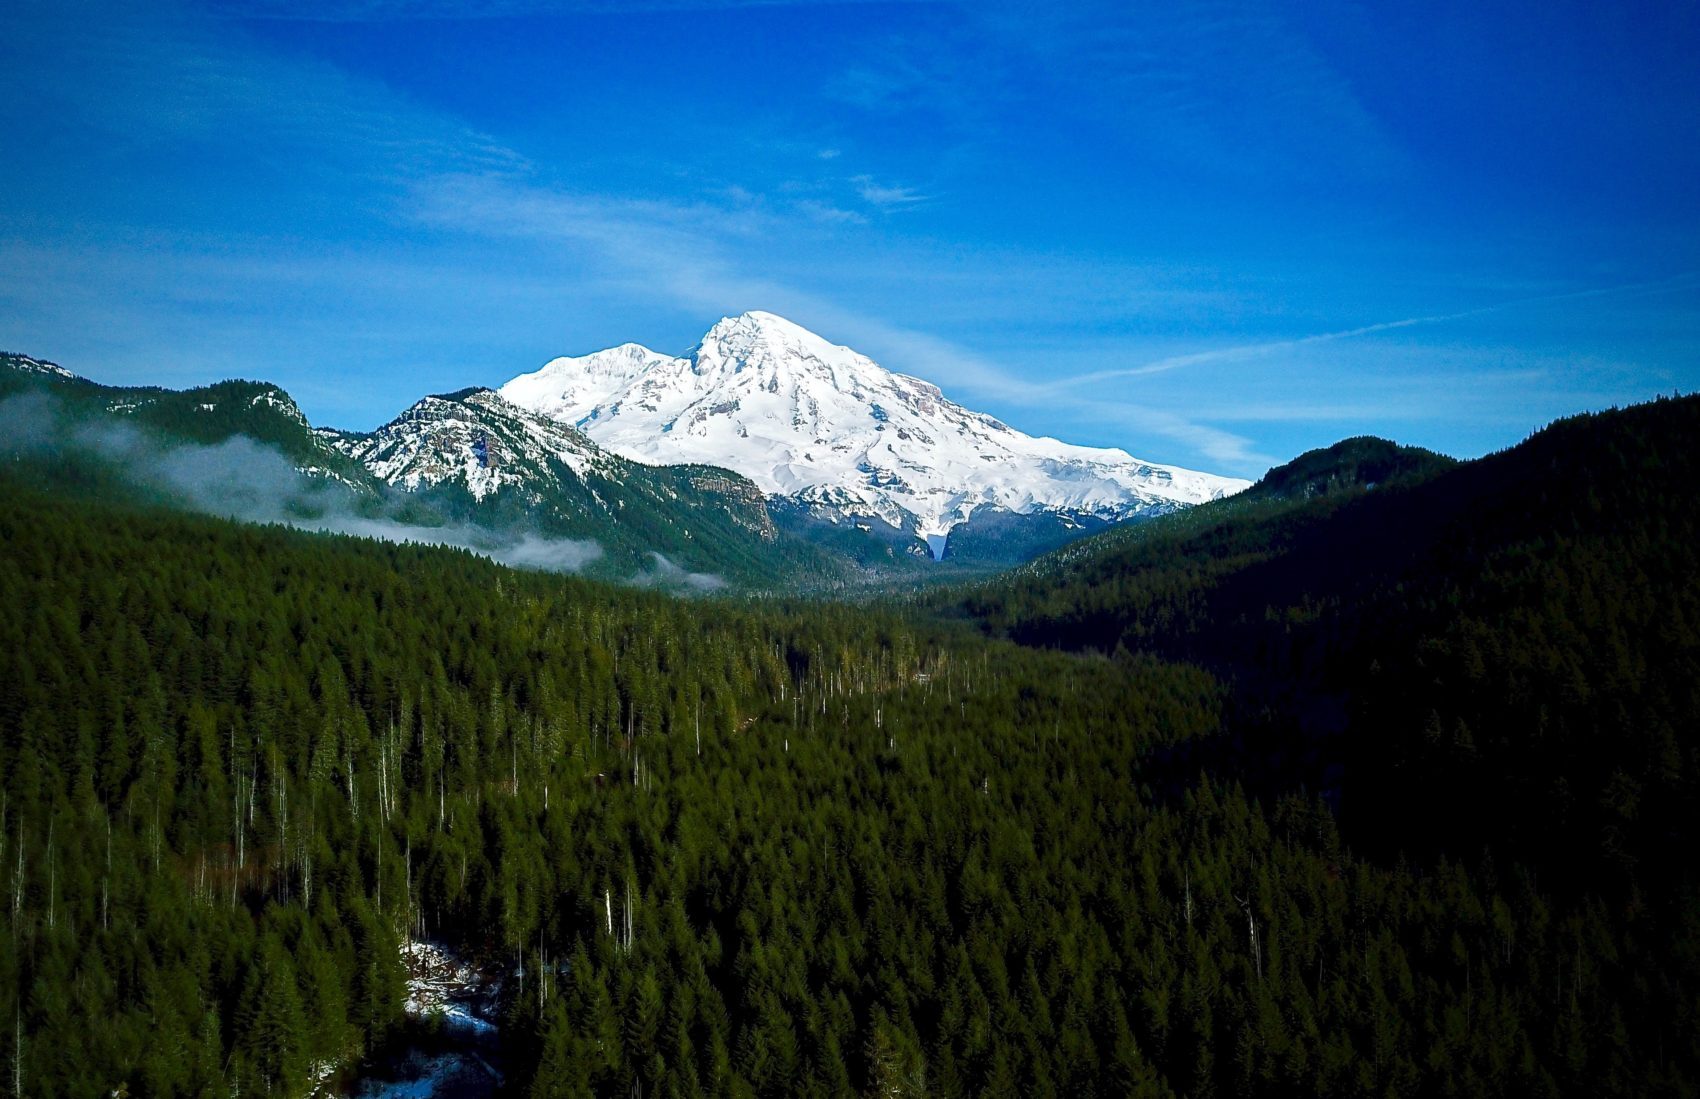 mount rainier, rainier, Washington